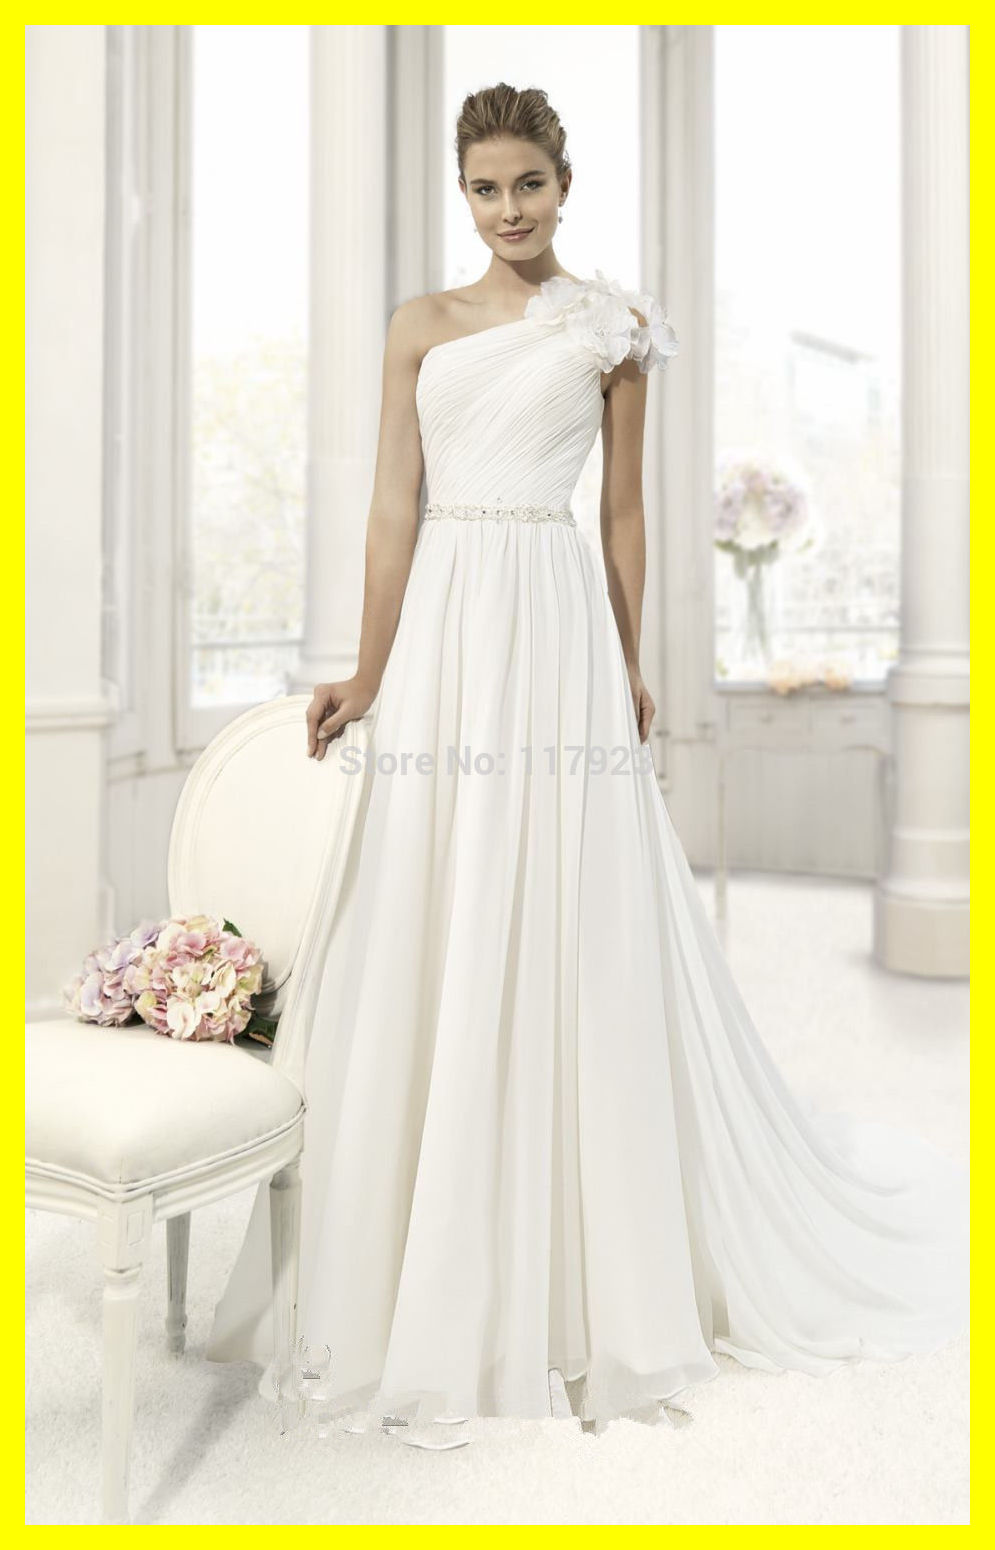 Off White Wedding Dresses Casual Beach Dress To Hire Uk High Street ...